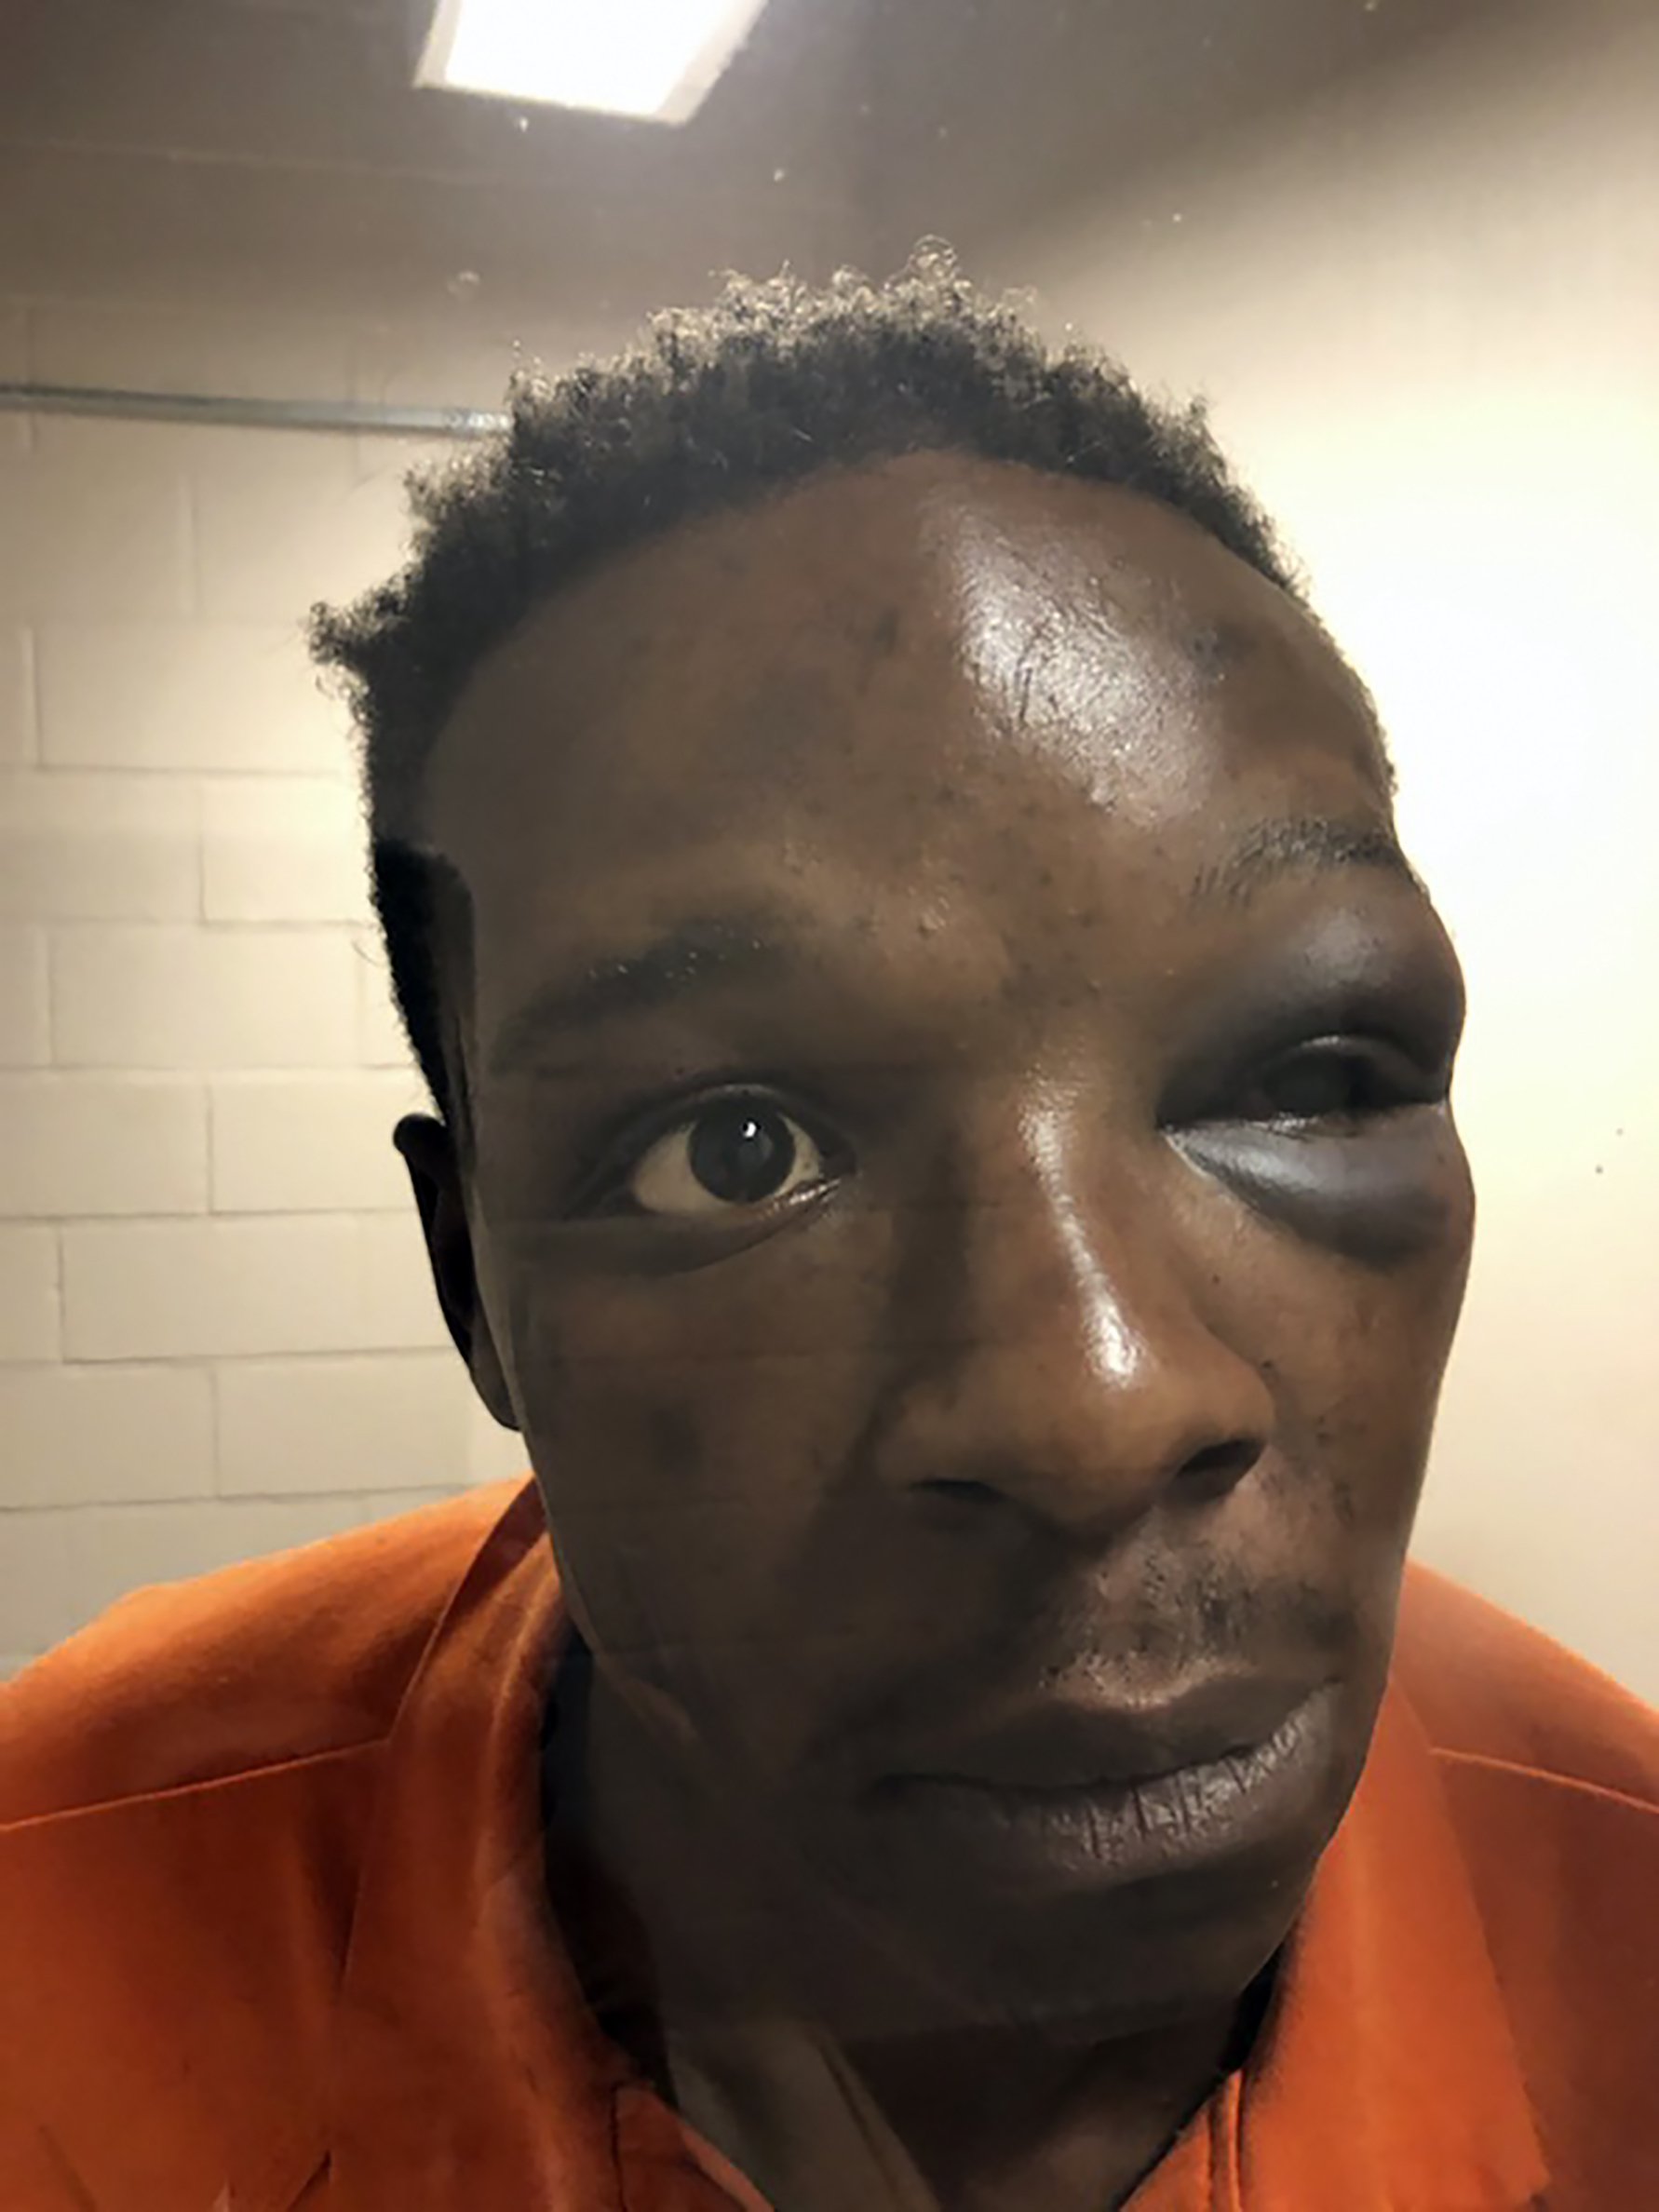 This Saturday, Sept. 12, 2020 photo provided by The Cochran Firm shows Roderick Walker at the Clayton County Jail in Jonesboro, Ga. A sheriff's office in Georgia said Sunday, Sept. 13, 2020 it fired a deputy seen on video repeatedly punching Walker during a traffic stop.